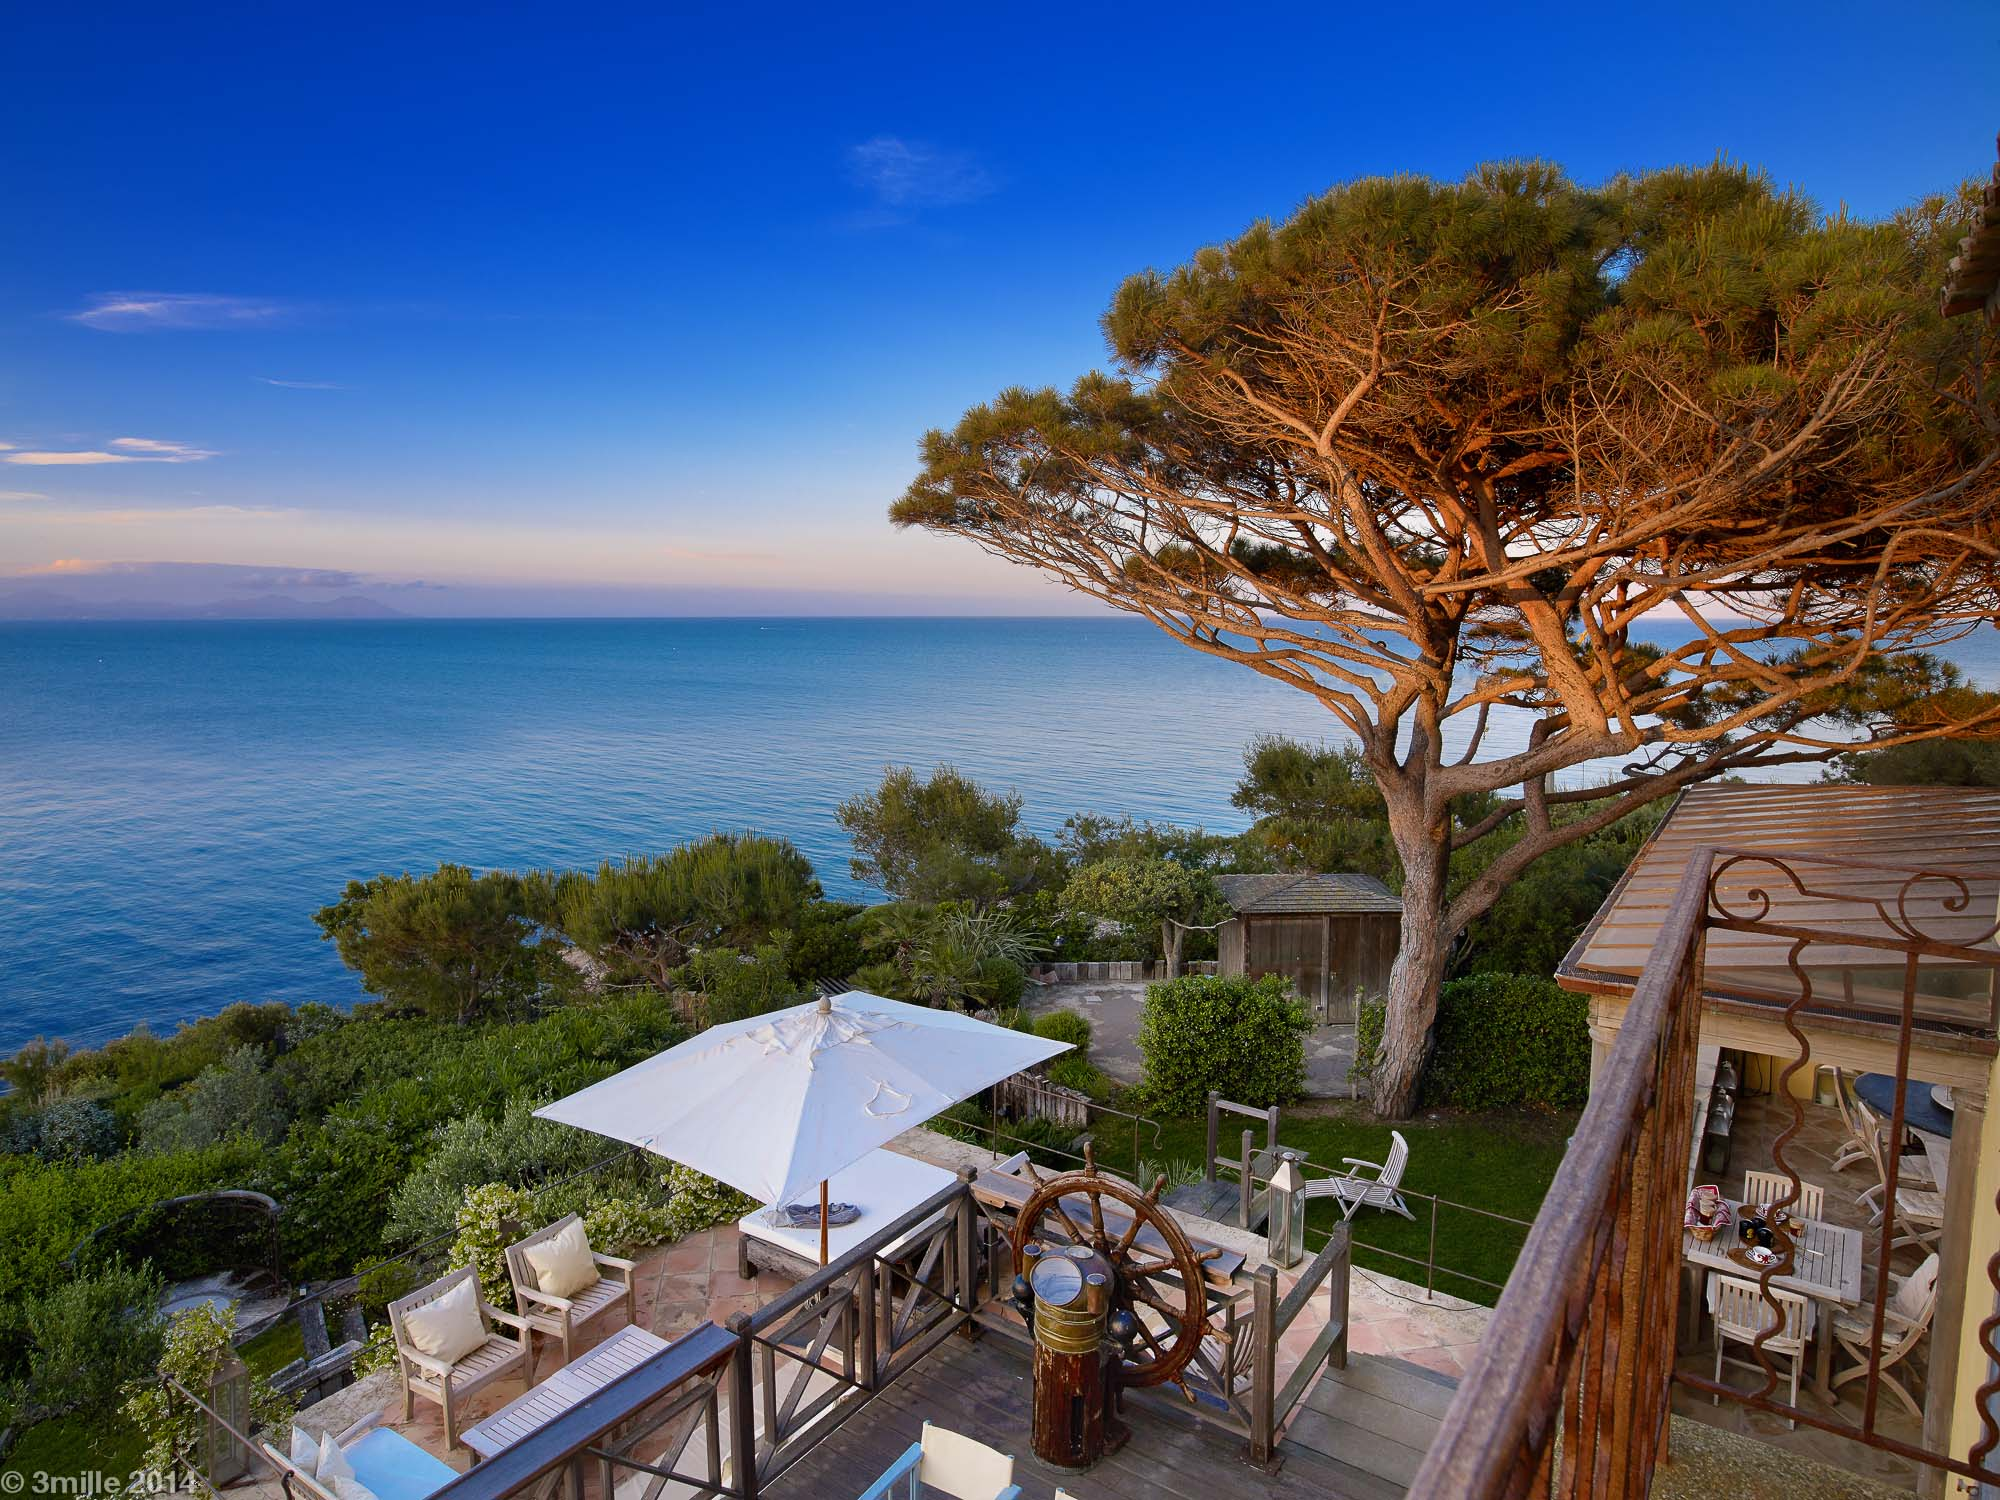 단독 가정 주택 용 매매 에 Luxury property with amazing sea views in the Parcs of Saint-Tropez Saint Tropez Saint Tropez, 프로벤스 앞ㄹ프스 코테 D'Azur, 83990 프랑스